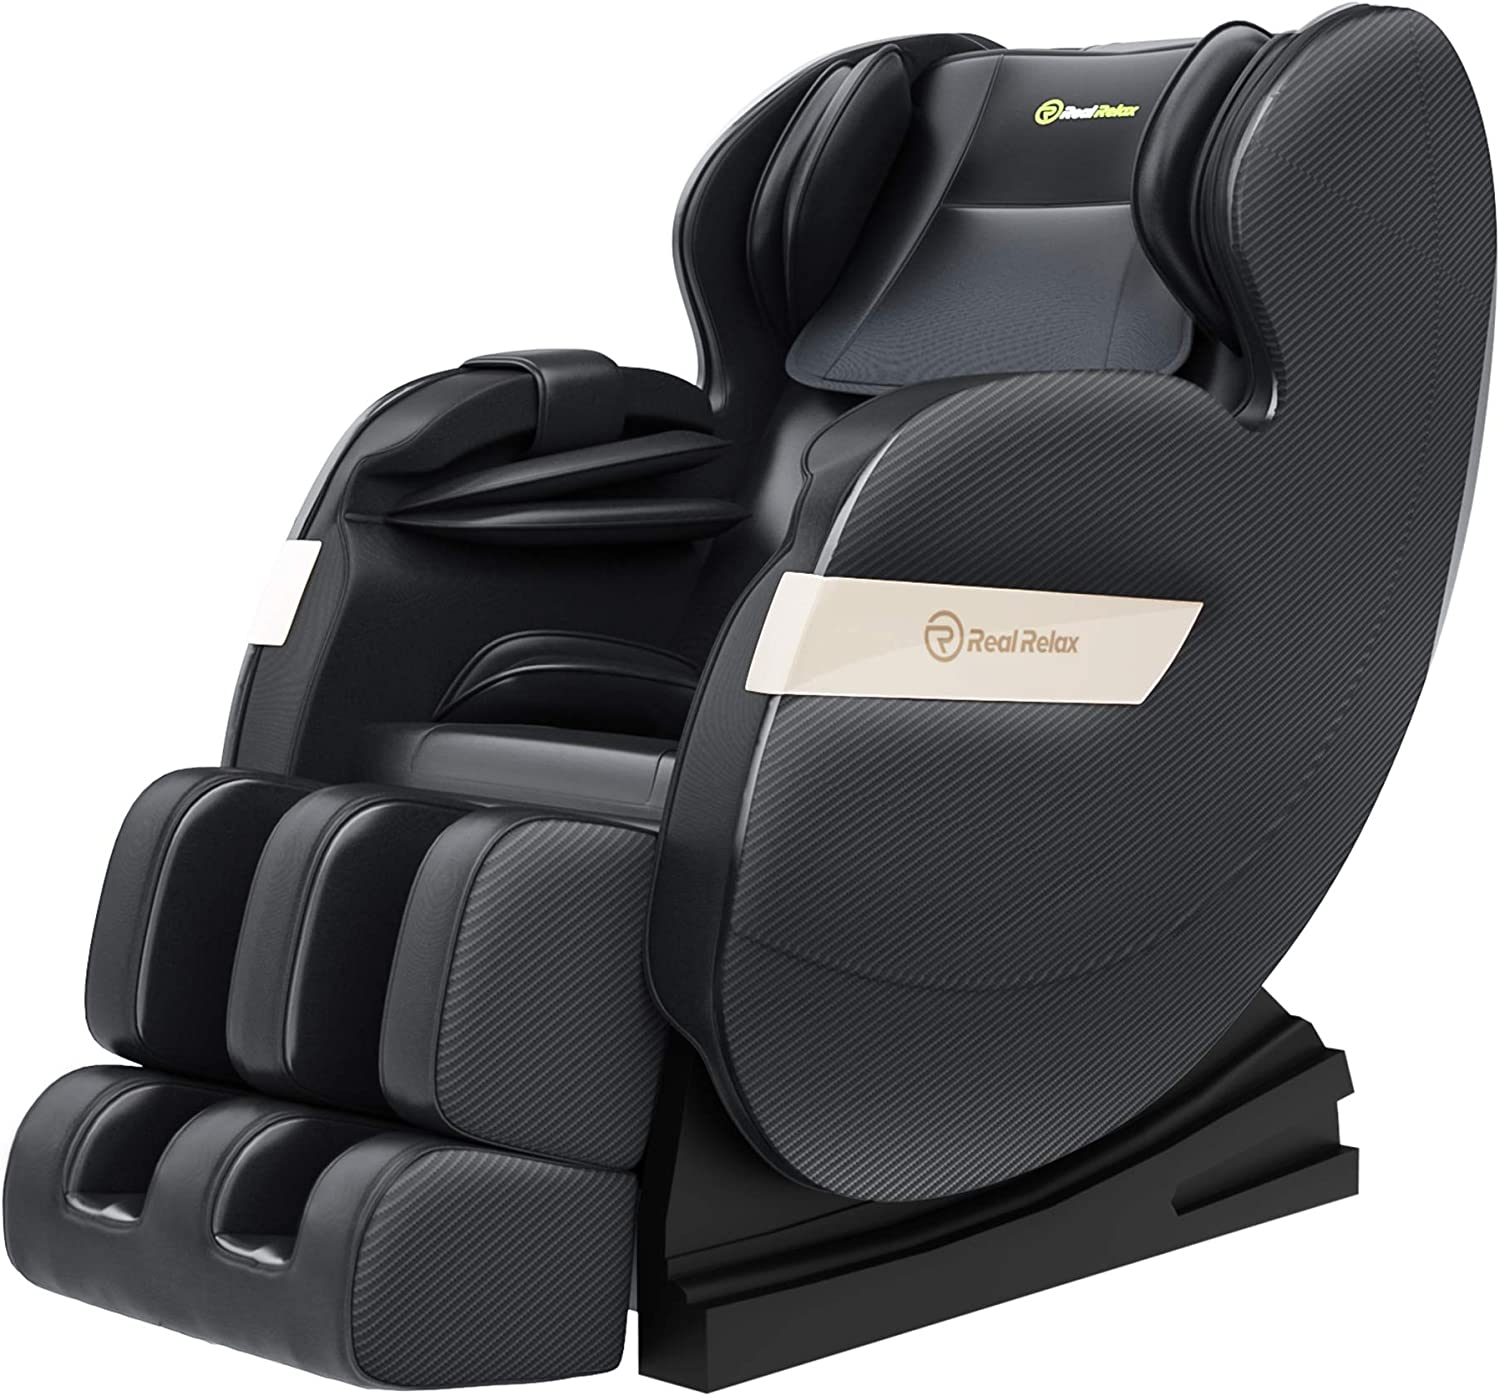 - What Is The Best Living Room Chair For Neck Pain - ChairPicks